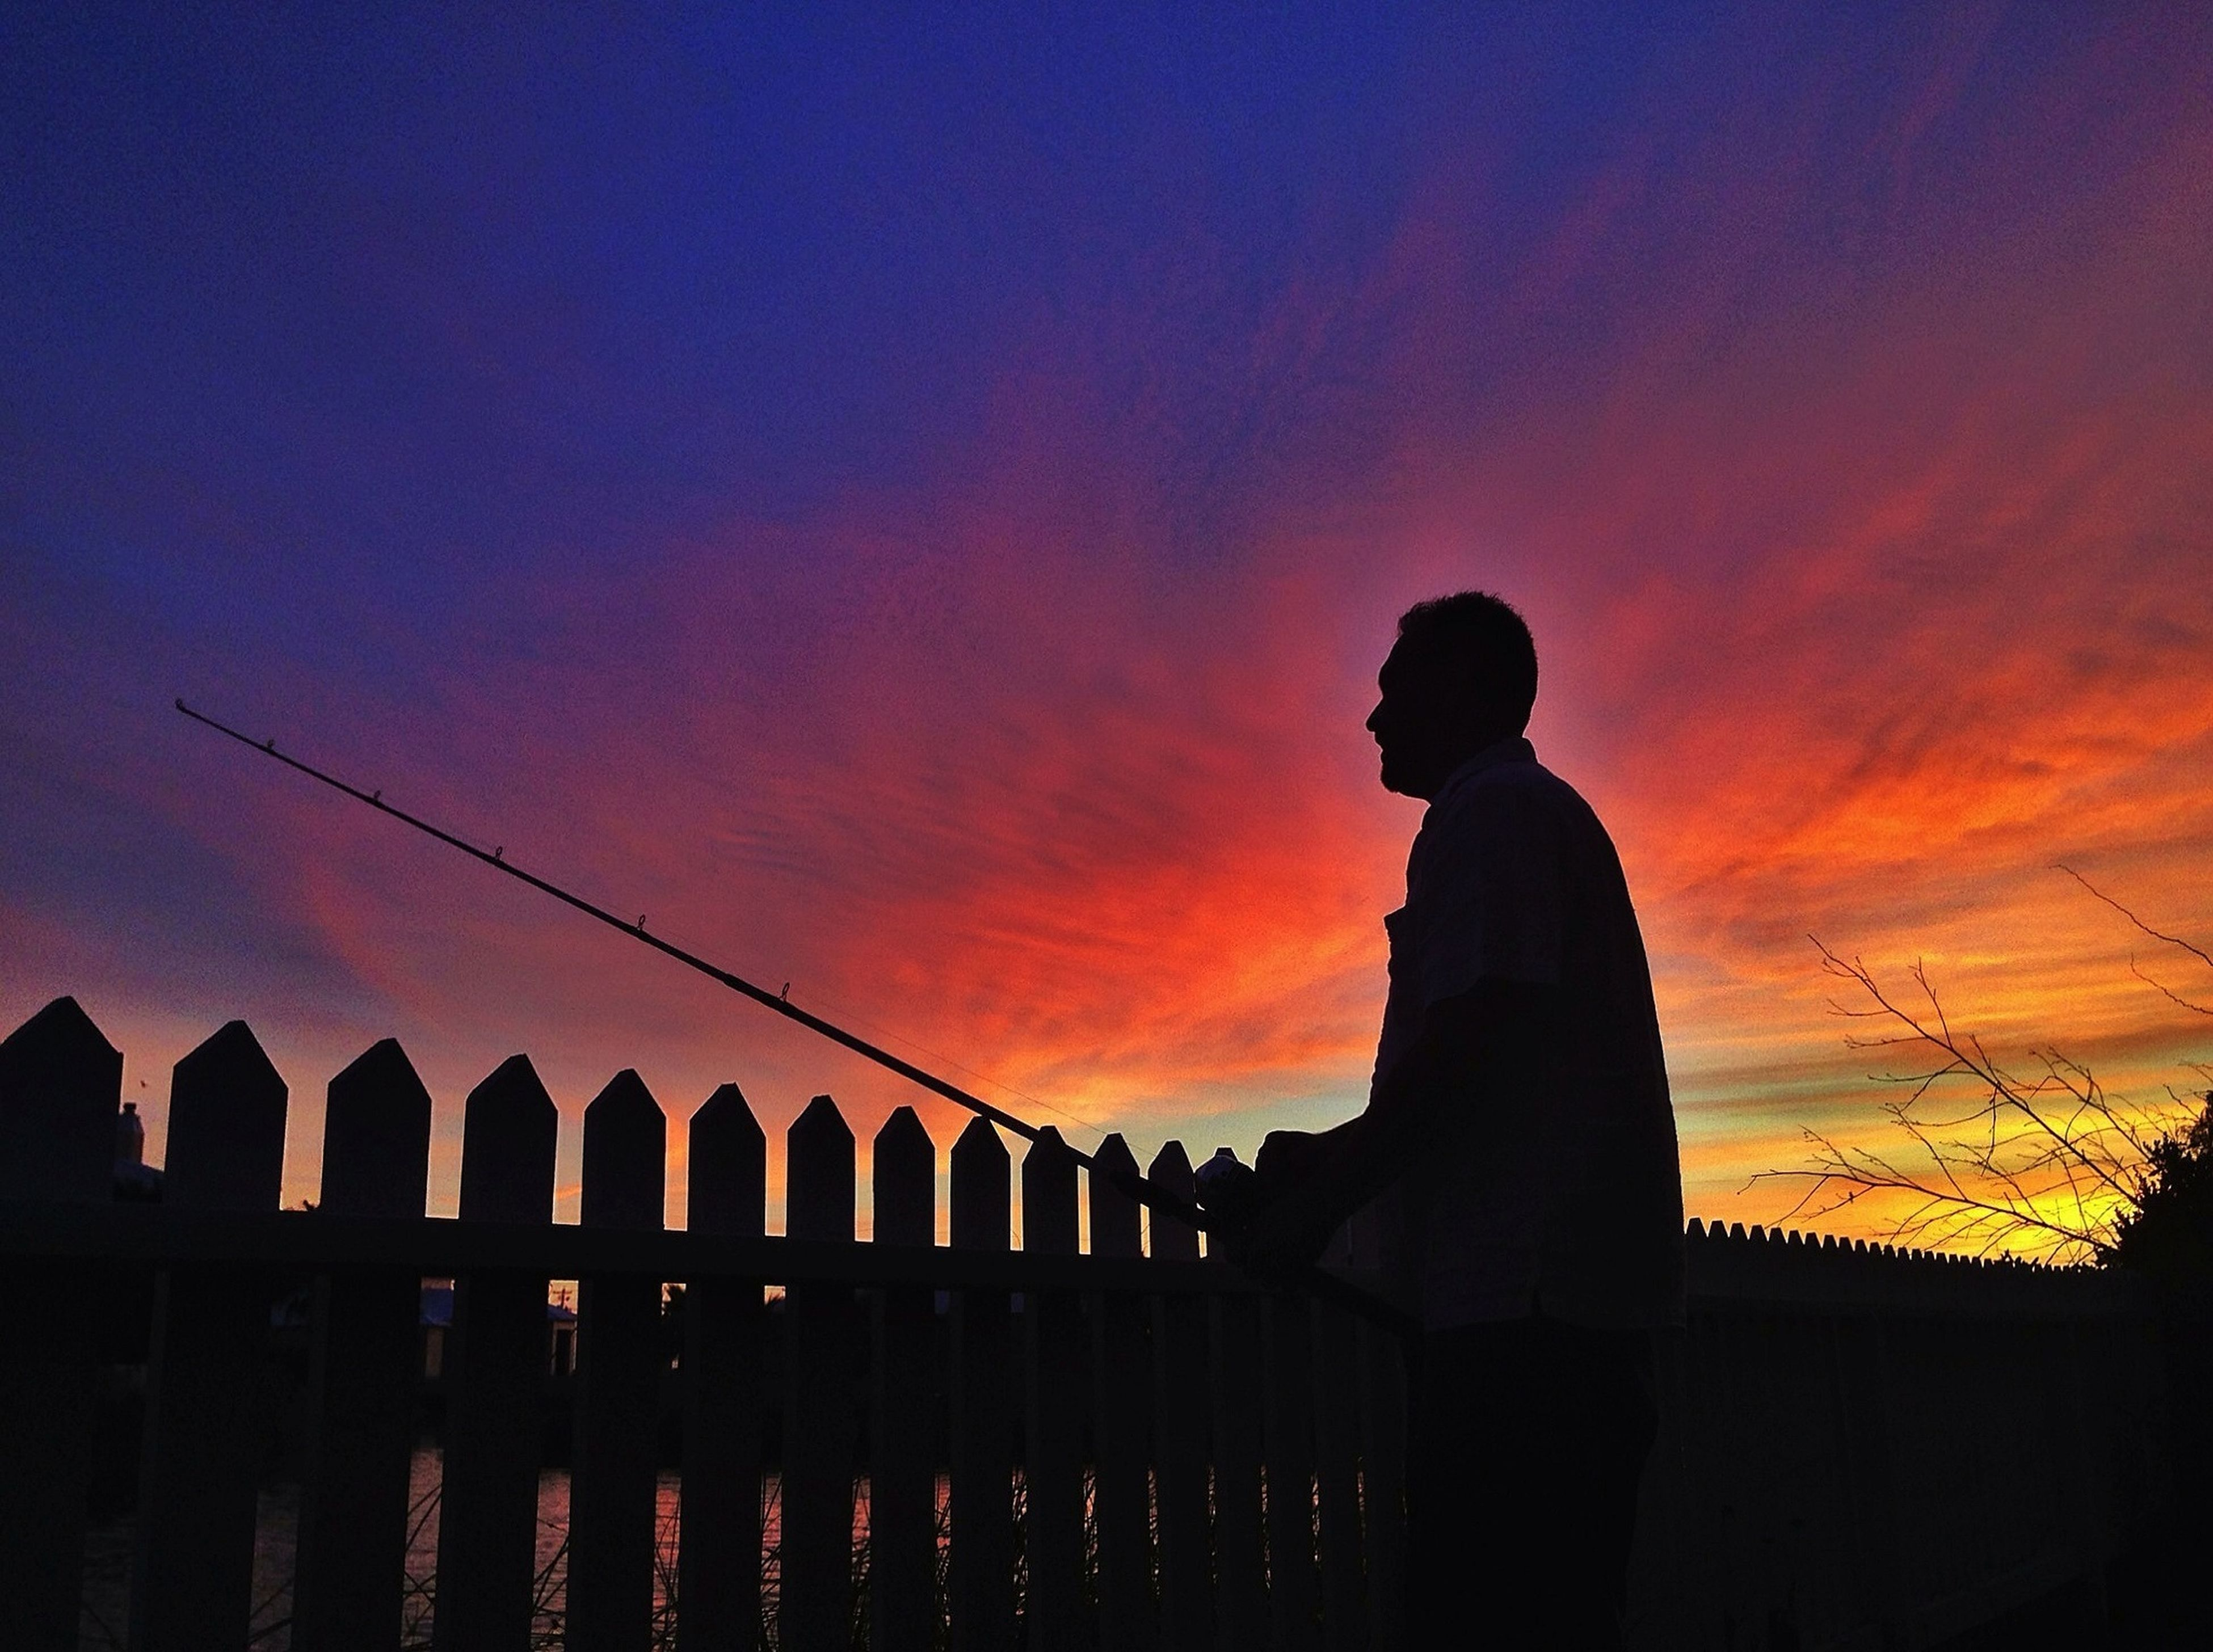 sunset, silhouette, orange color, sky, low angle view, built structure, cloud - sky, architecture, beauty in nature, dusk, nature, scenics, dramatic sky, tranquility, outdoors, outline, tranquil scene, cloud, dark, idyllic